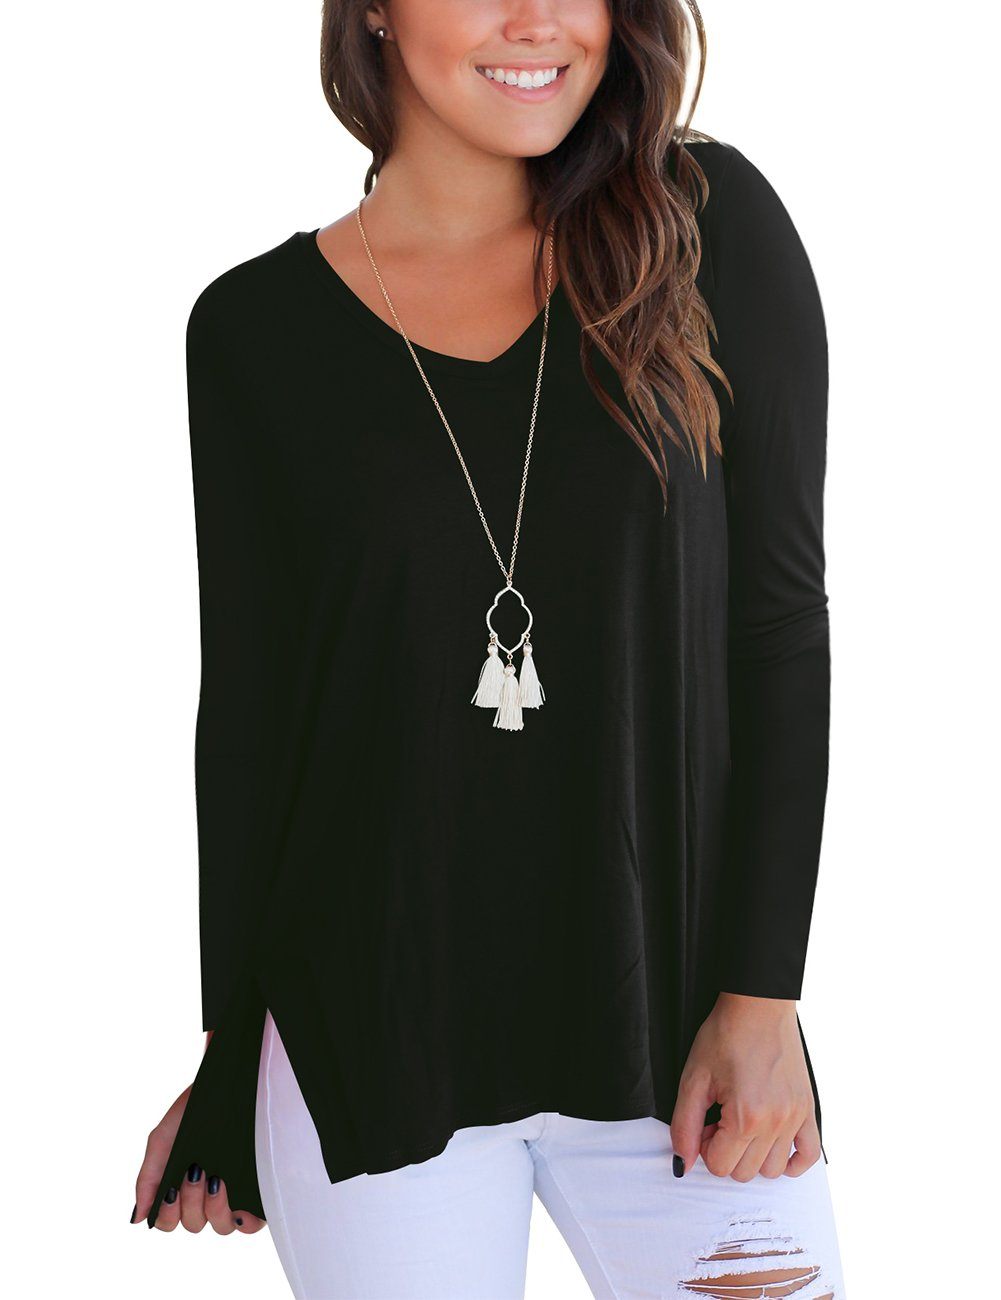 Tunic Tops for Women Long Sleeve Casual T Shirts Plus Size Basic Solid Tees Black XXL